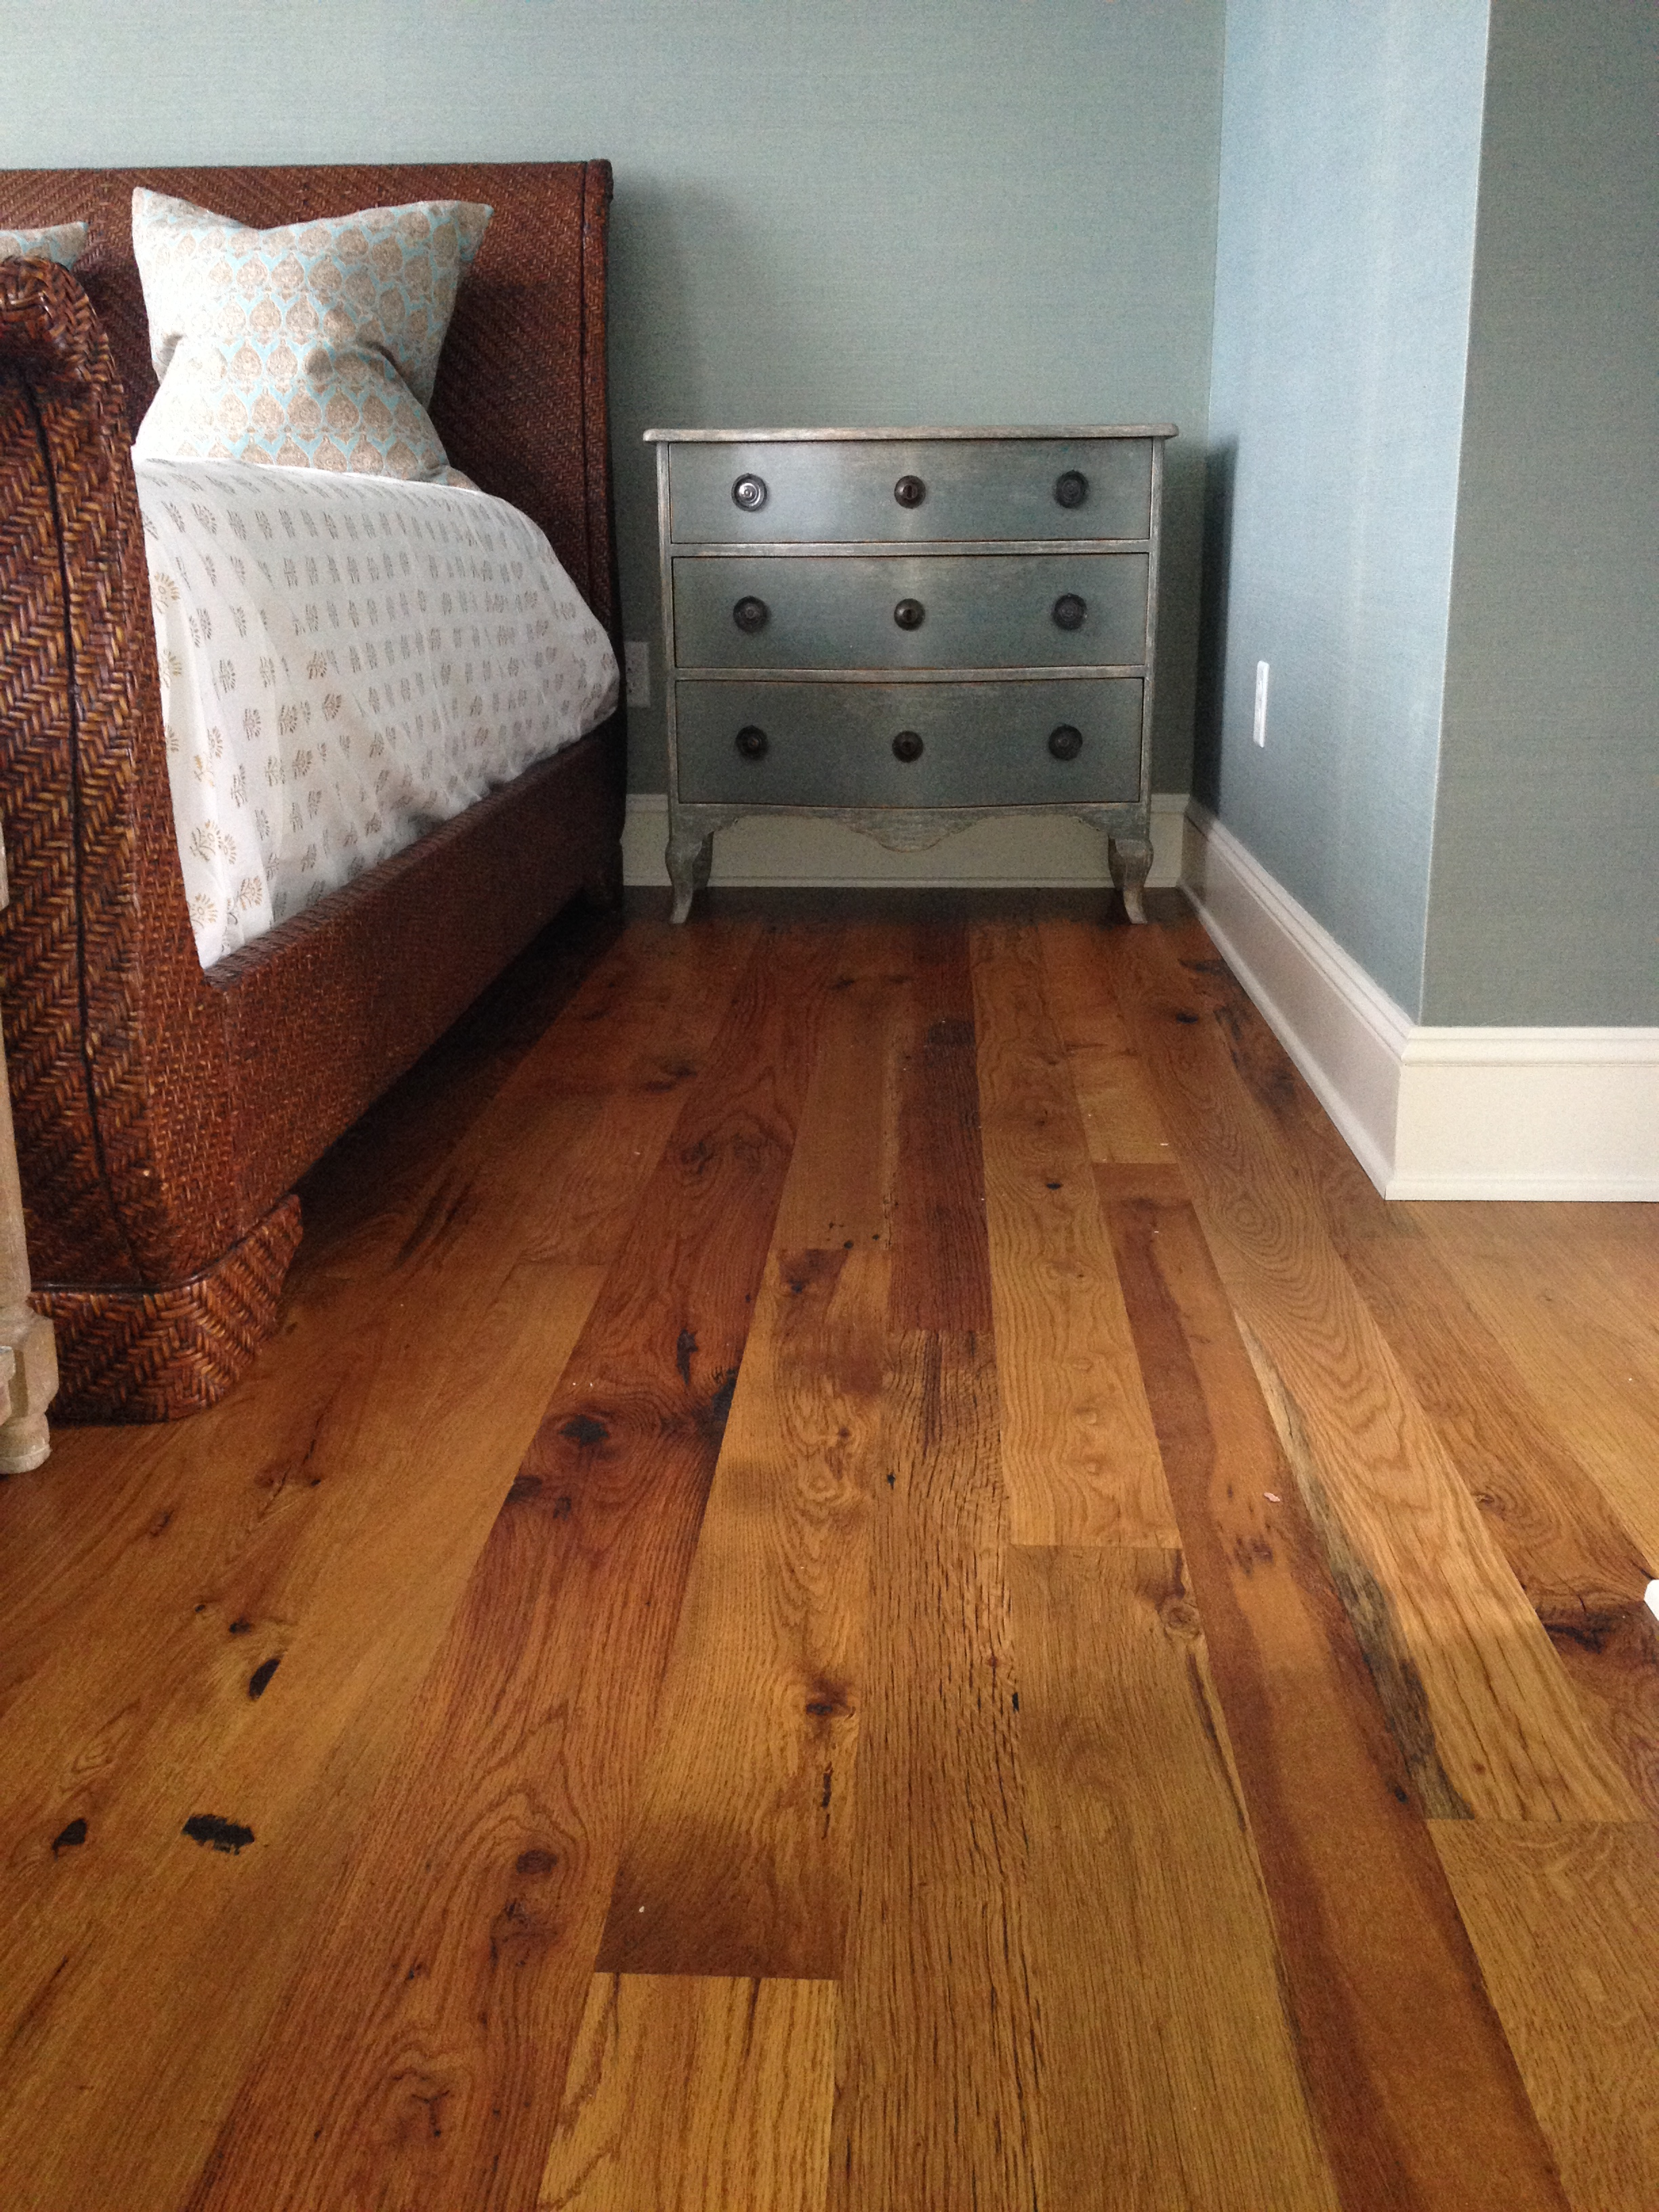 Bedrom with antique white floor in a residence in Kennebunkport, Maine